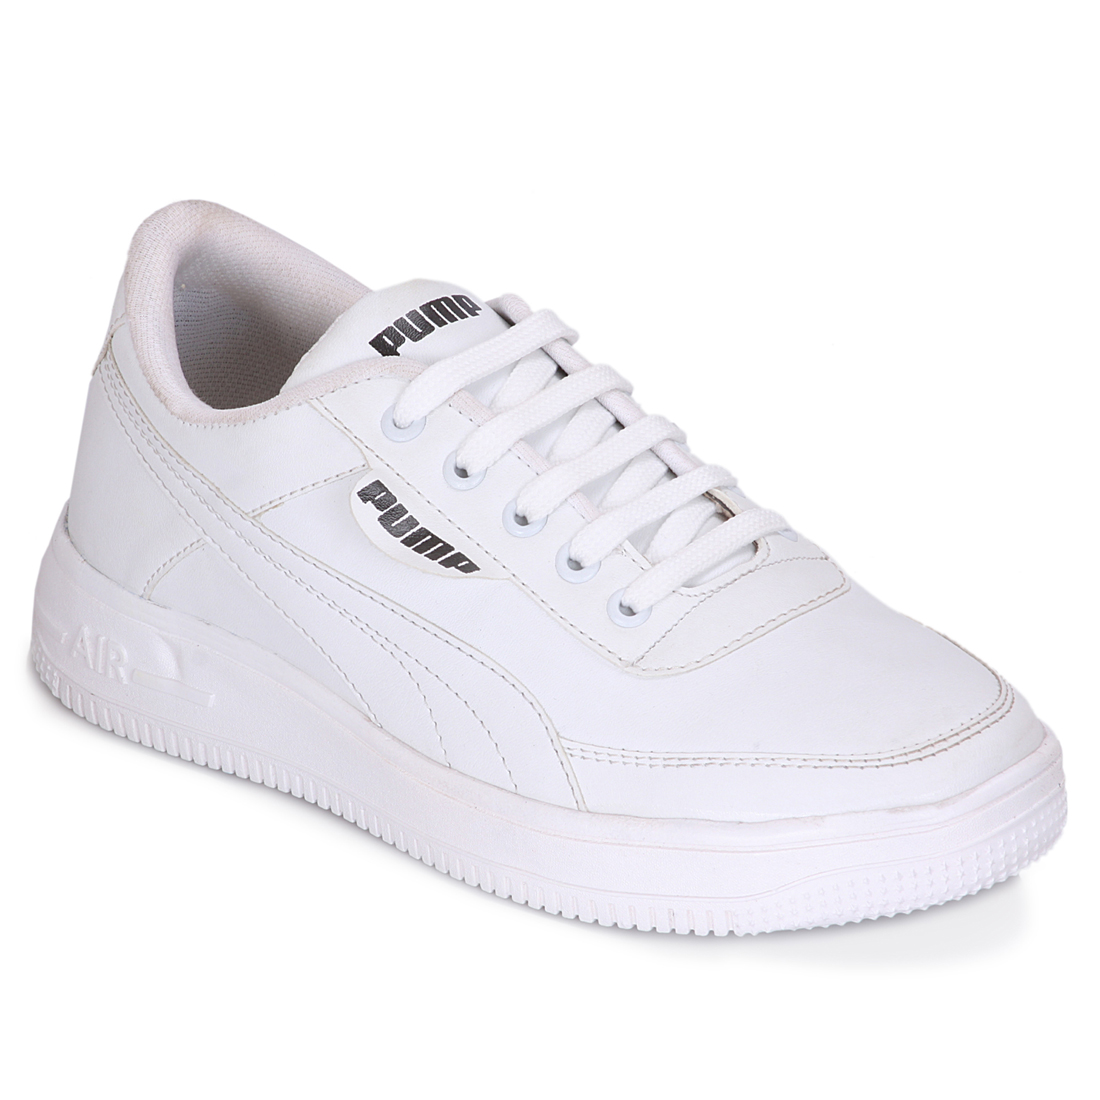 IMCOLUS372A.351_WHITE STYLESH & FANCY Casual Shoes SHOE FOR MEN'S IMCOLUS372A.351_WTE (WHITE, 7-10, 4 PAIR)